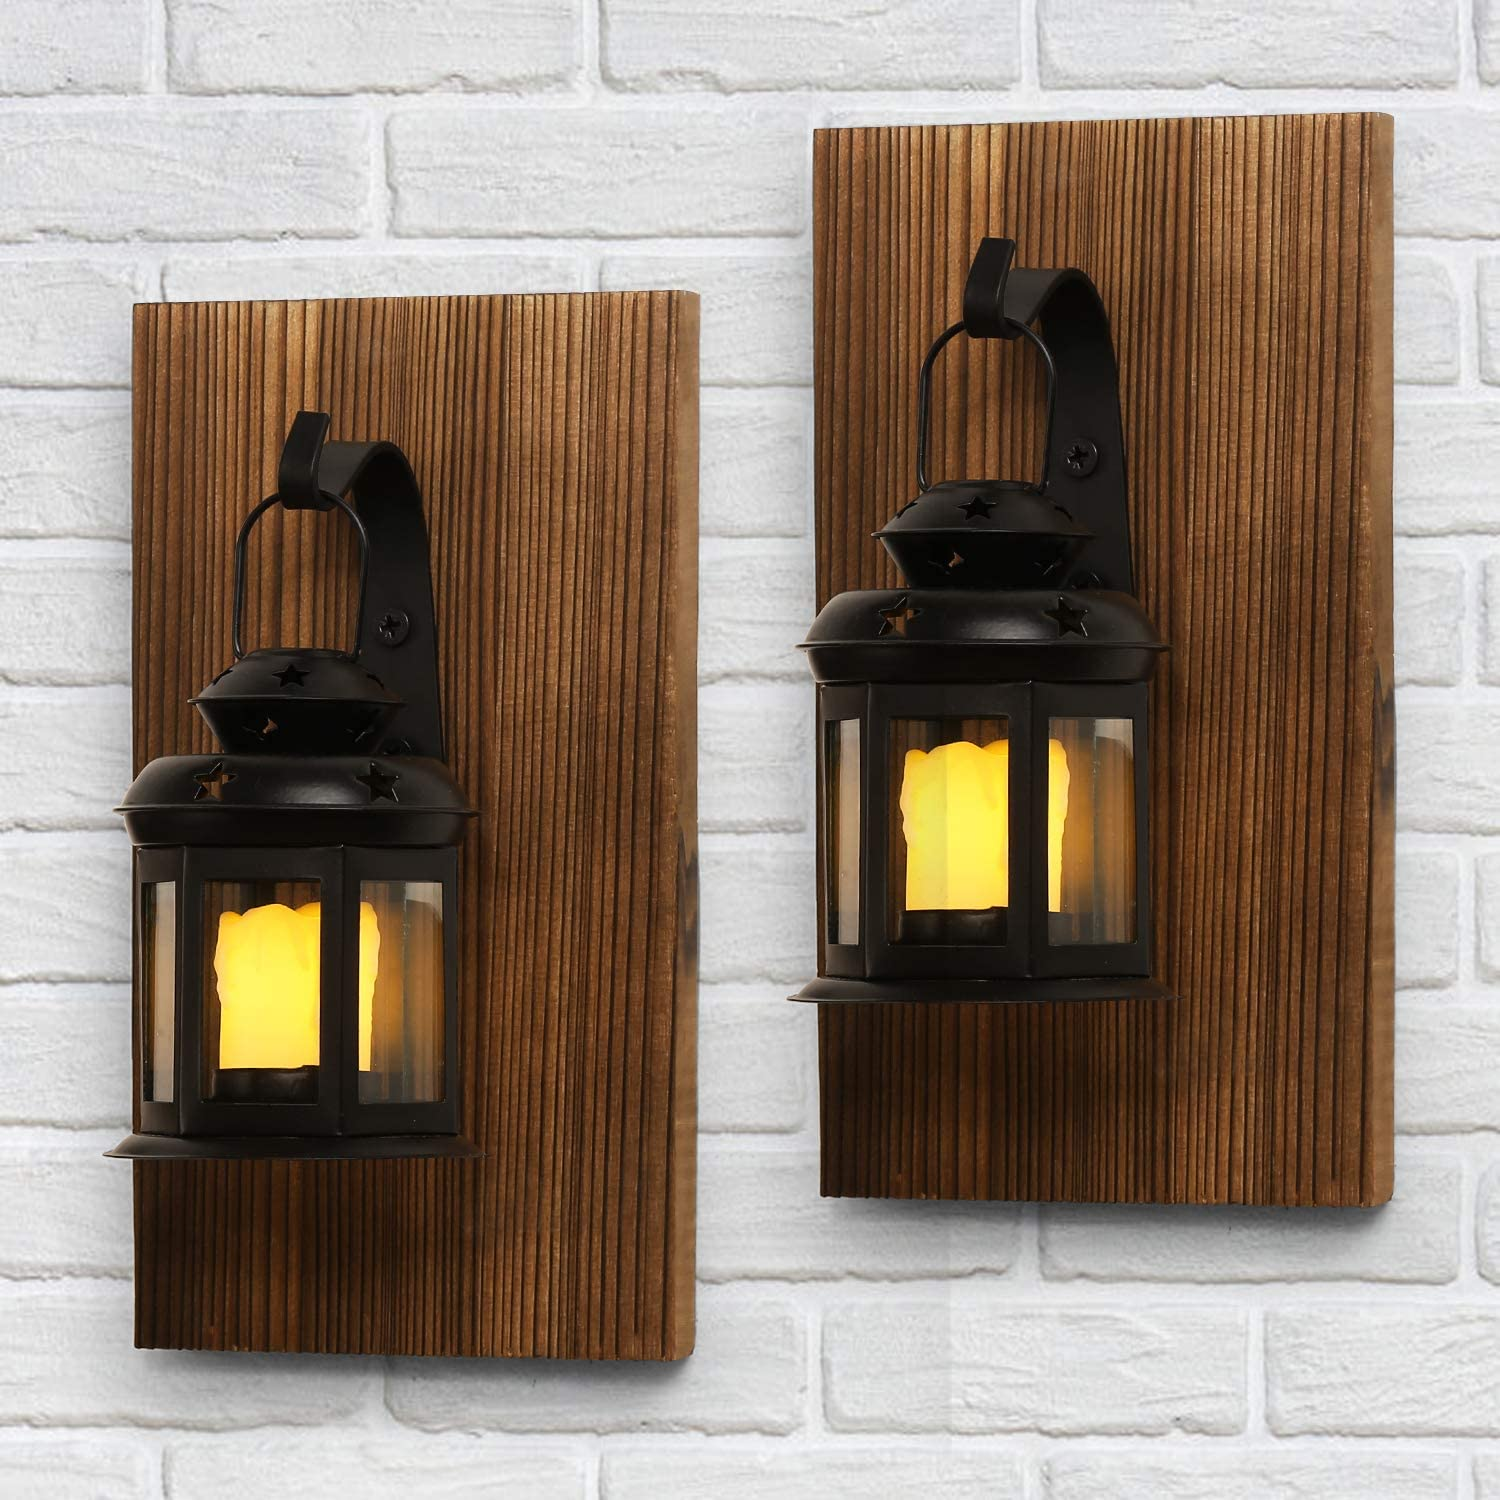 DOCMON Rustic Wall Sconce, Wall Mounted Hanging Farmhouse Lantern Sconces Set of Two with Electric Fake Candle for Living Room, Bathroom, Dining Room Decoration